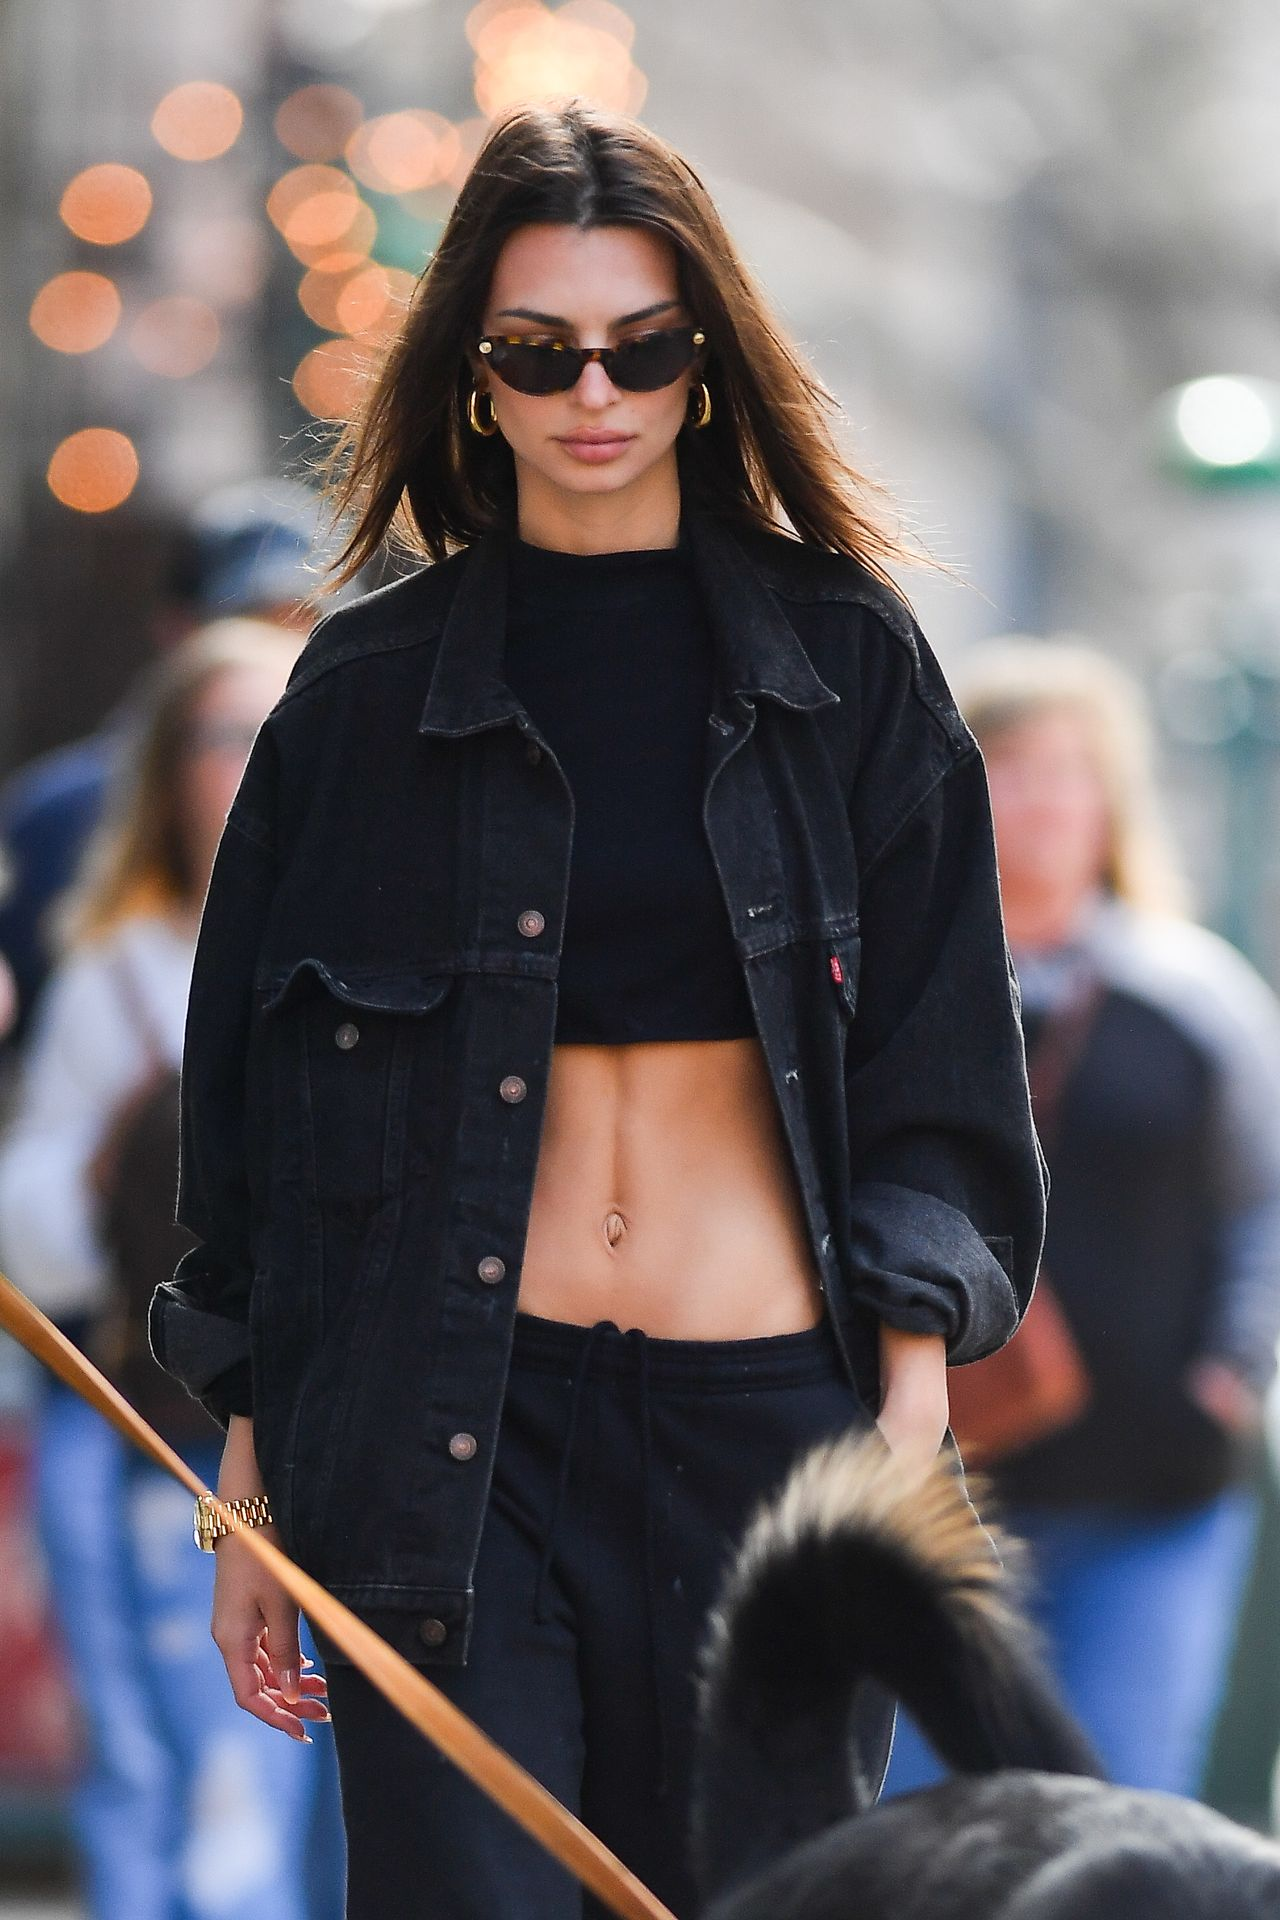 Emily Ratajkowski Walks With Her Dog Colombo In Nyc 0020